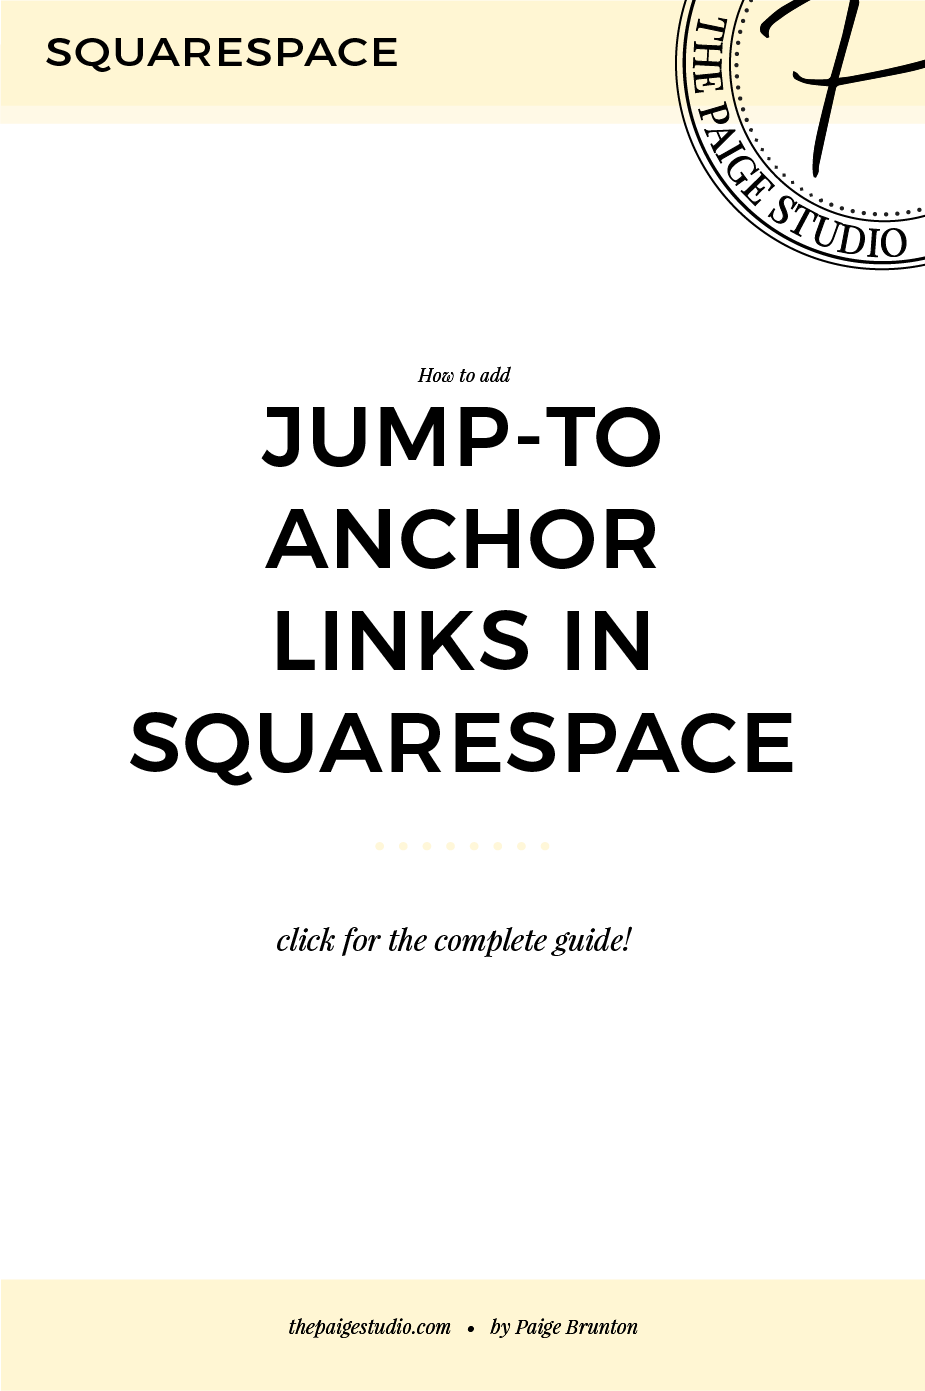 Squarespace hack: How to add jump to anchor links on a page — Paige